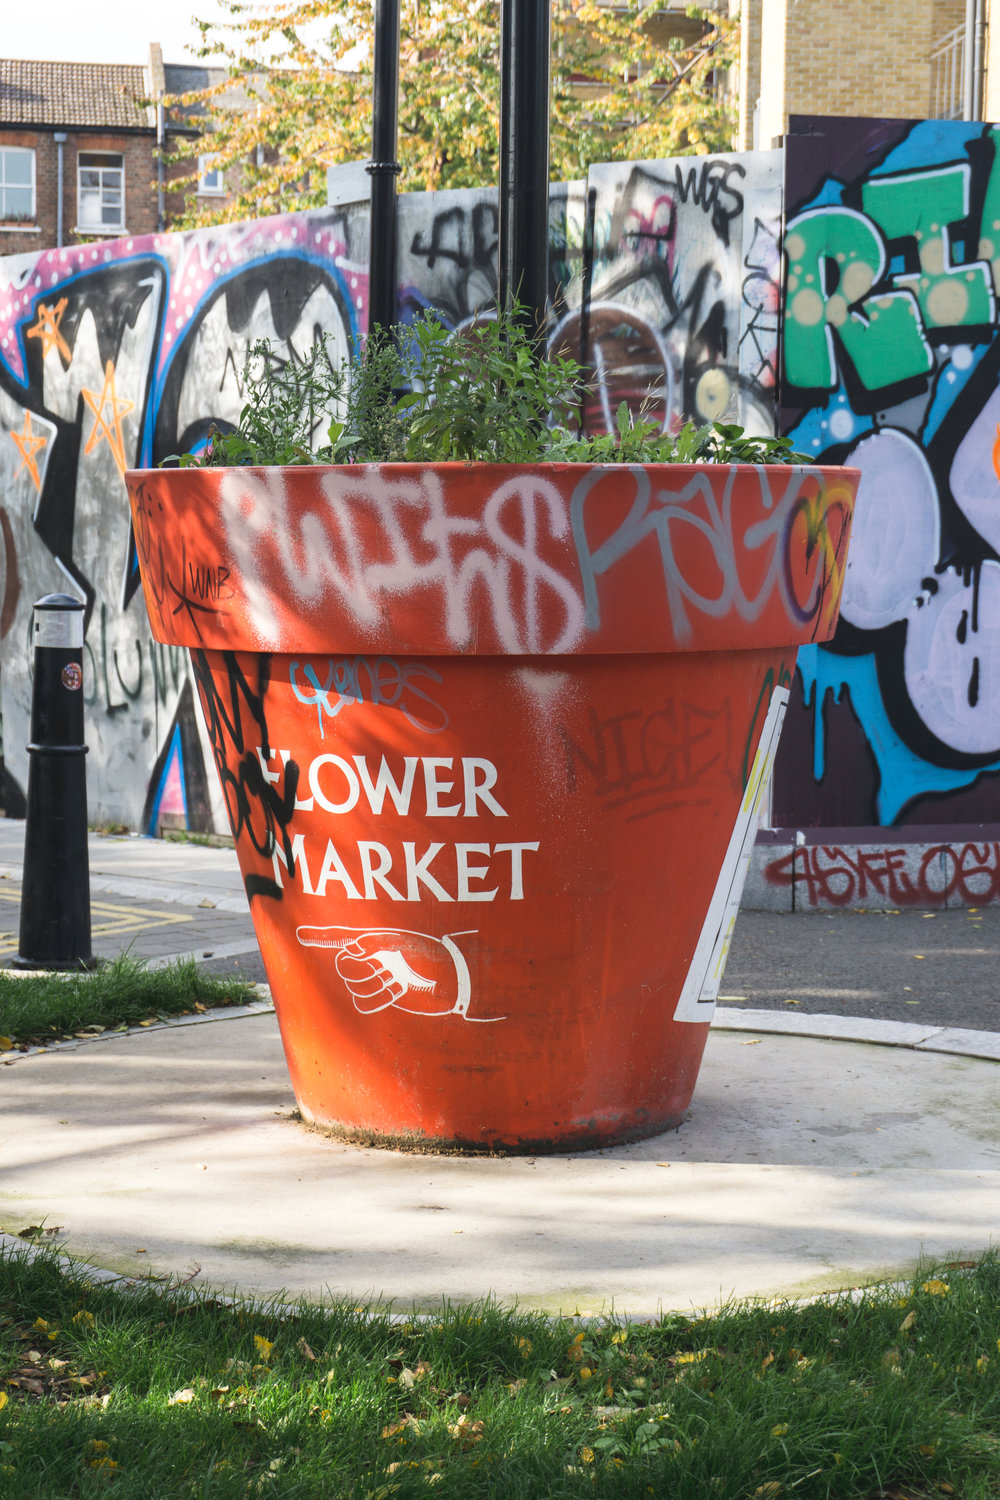 Flower Market_London_Tripp Films.jpg